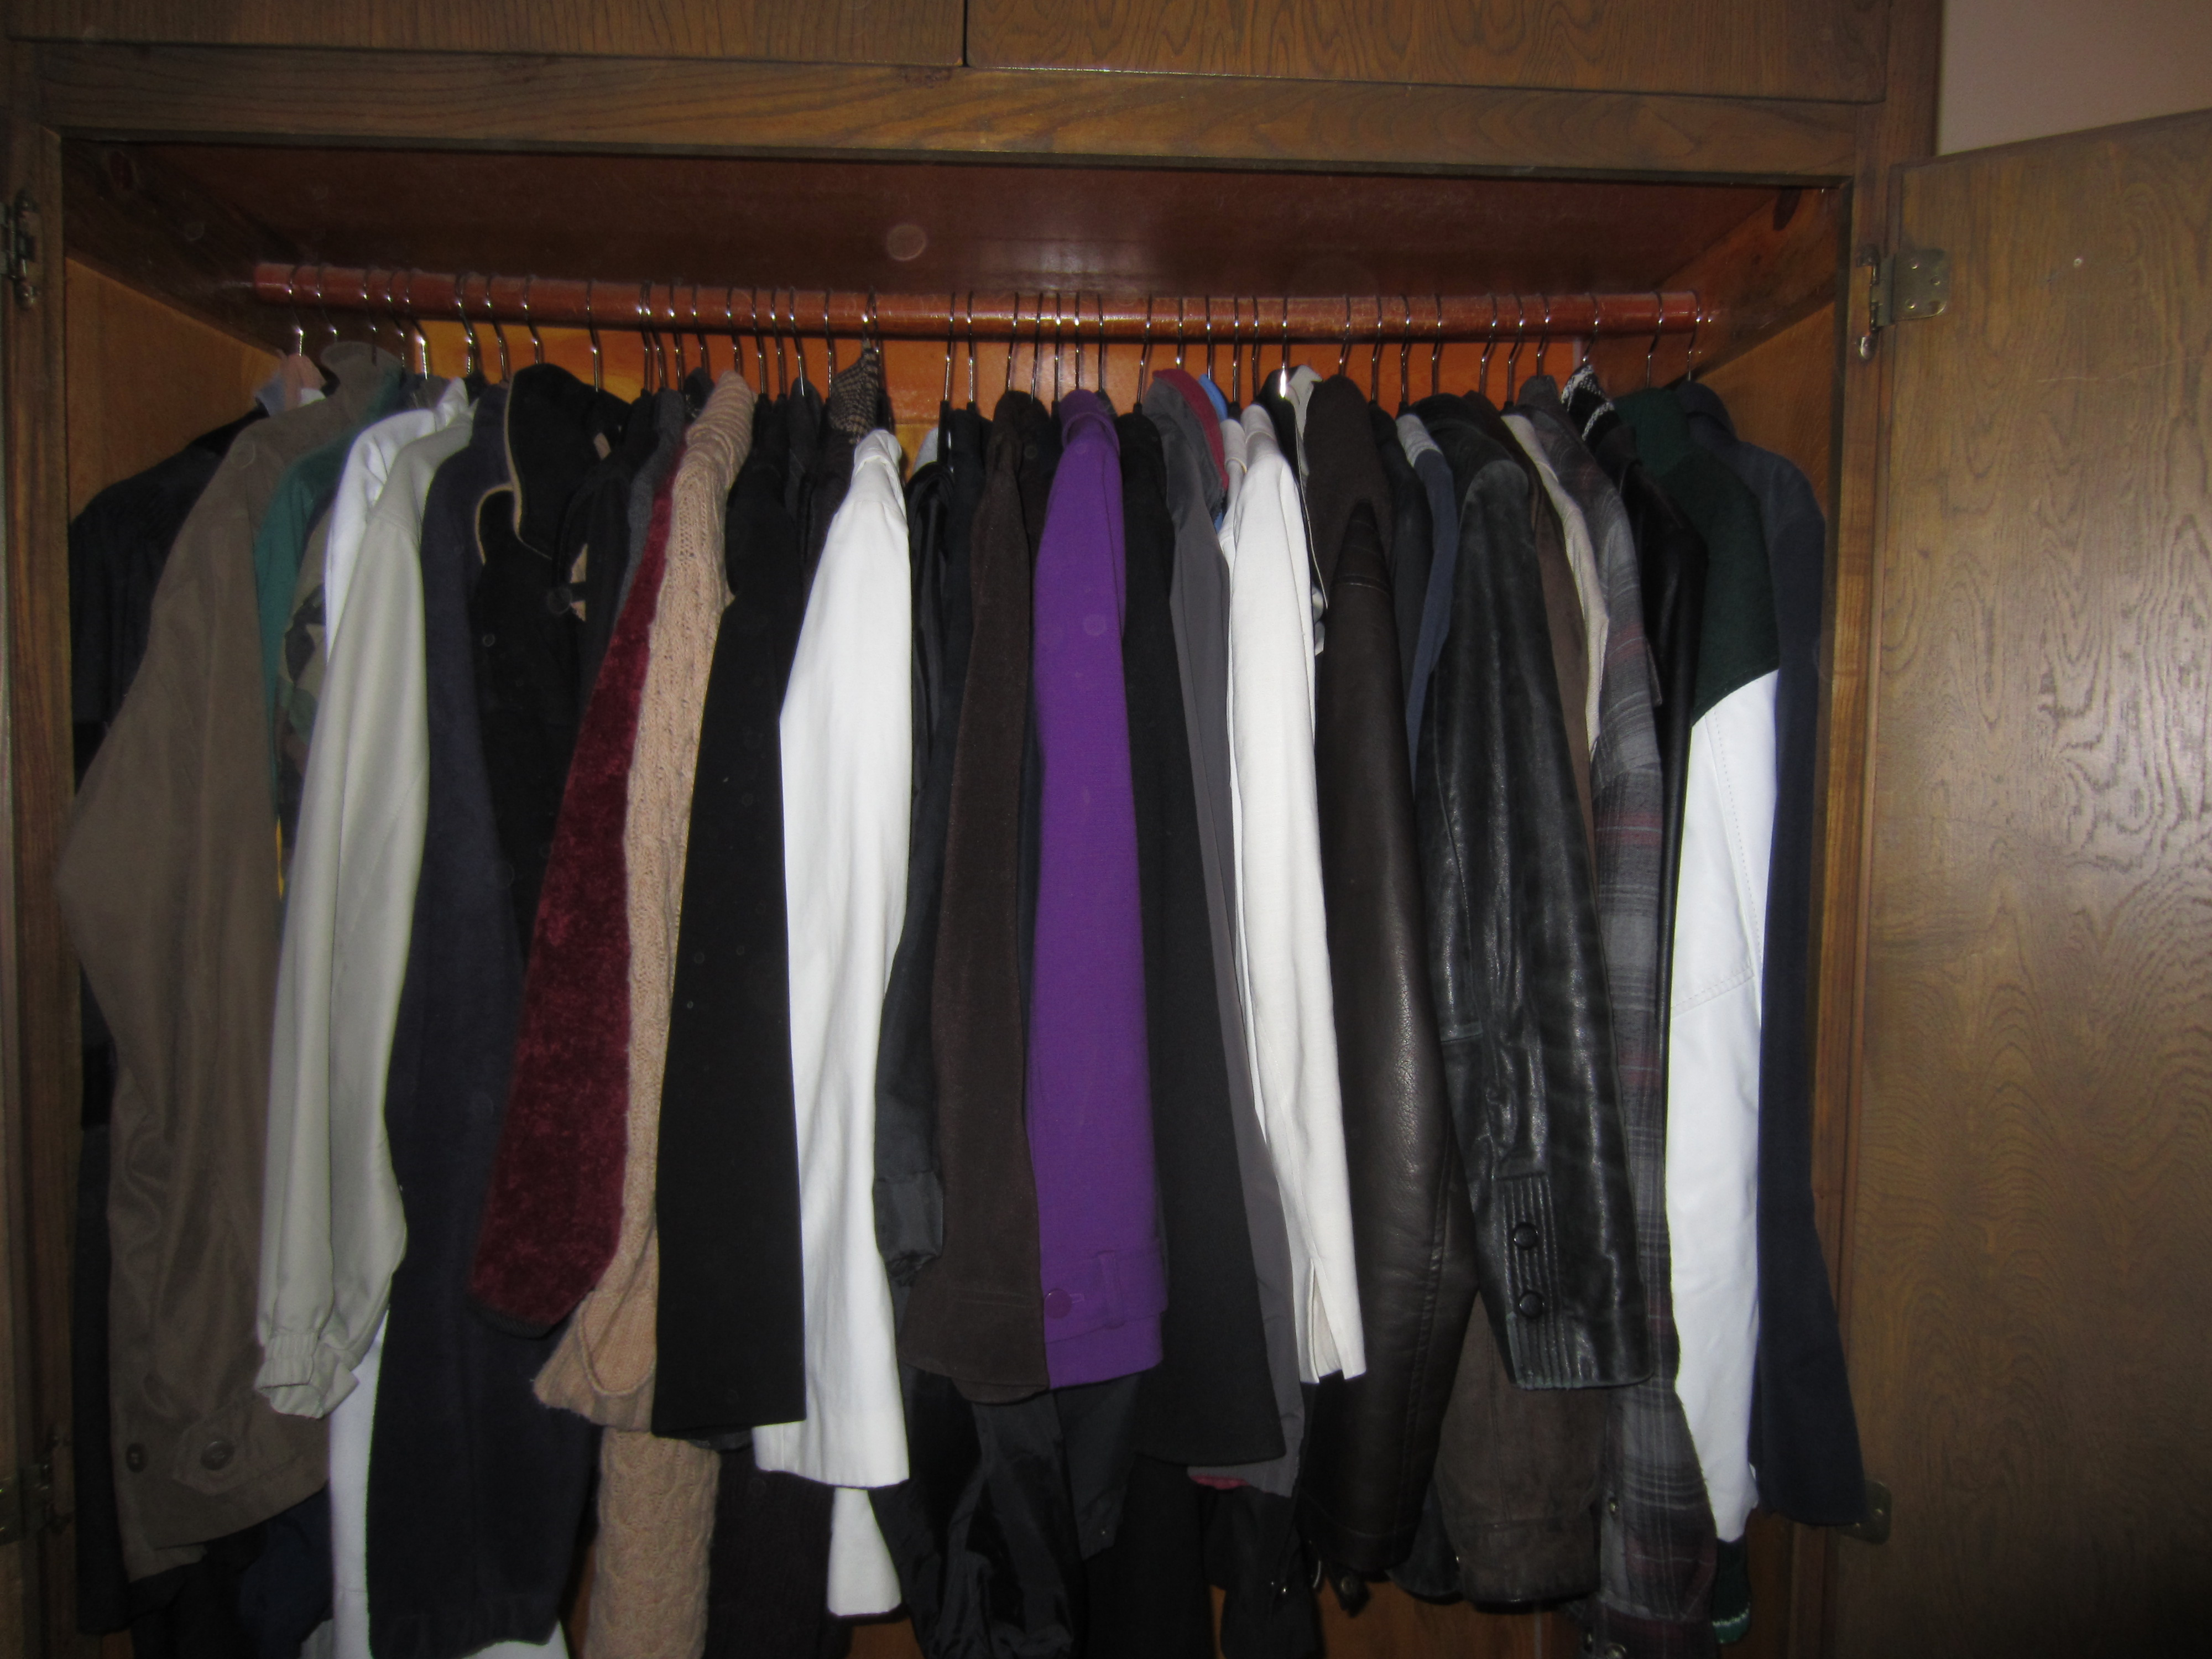 Bon The Coat Closet That You See When You Enter The House Is Stuffed With Nice  Expensive Coats And Jackets. The Problem Is, I Donu0027t Wear Most Of Them.